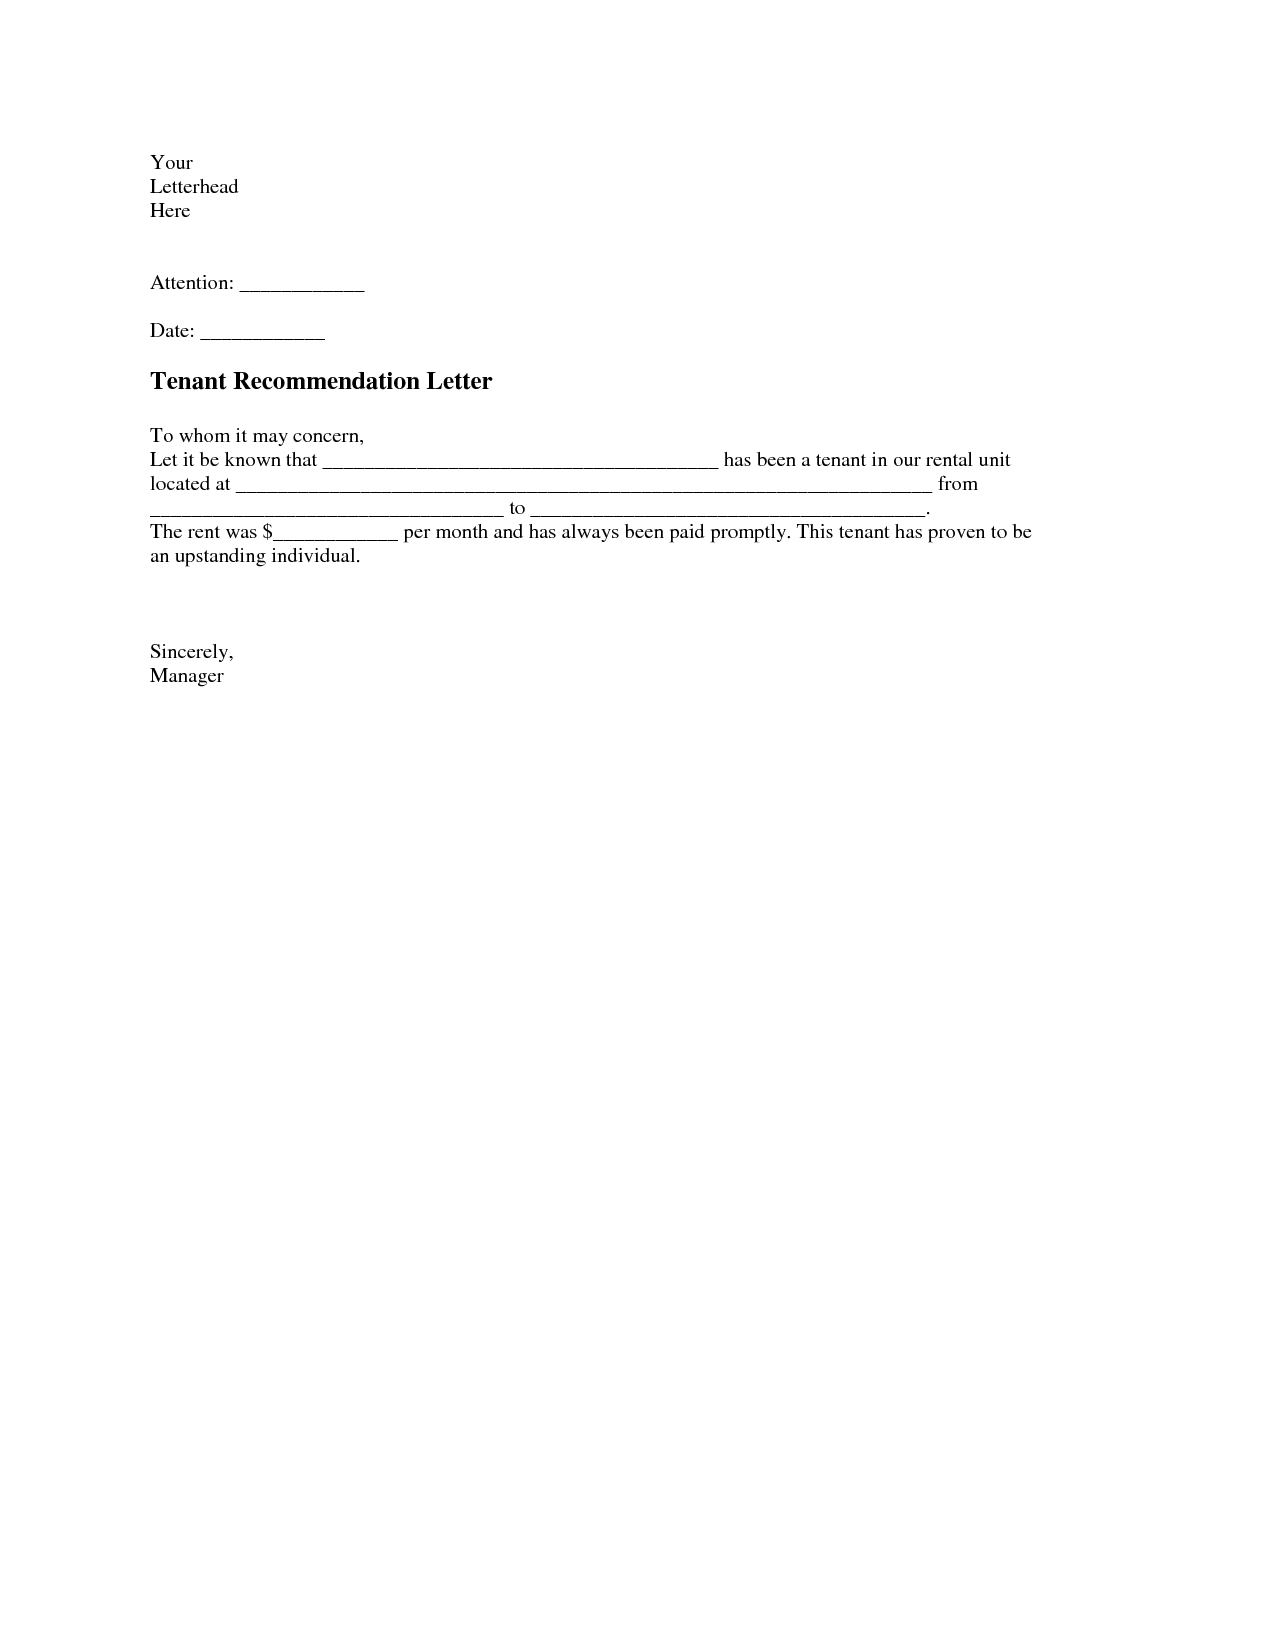 Notice Letter to Tenant From Landlord Template - Tenant Re Mendation Letter A Tenant Re Mendation Letter is